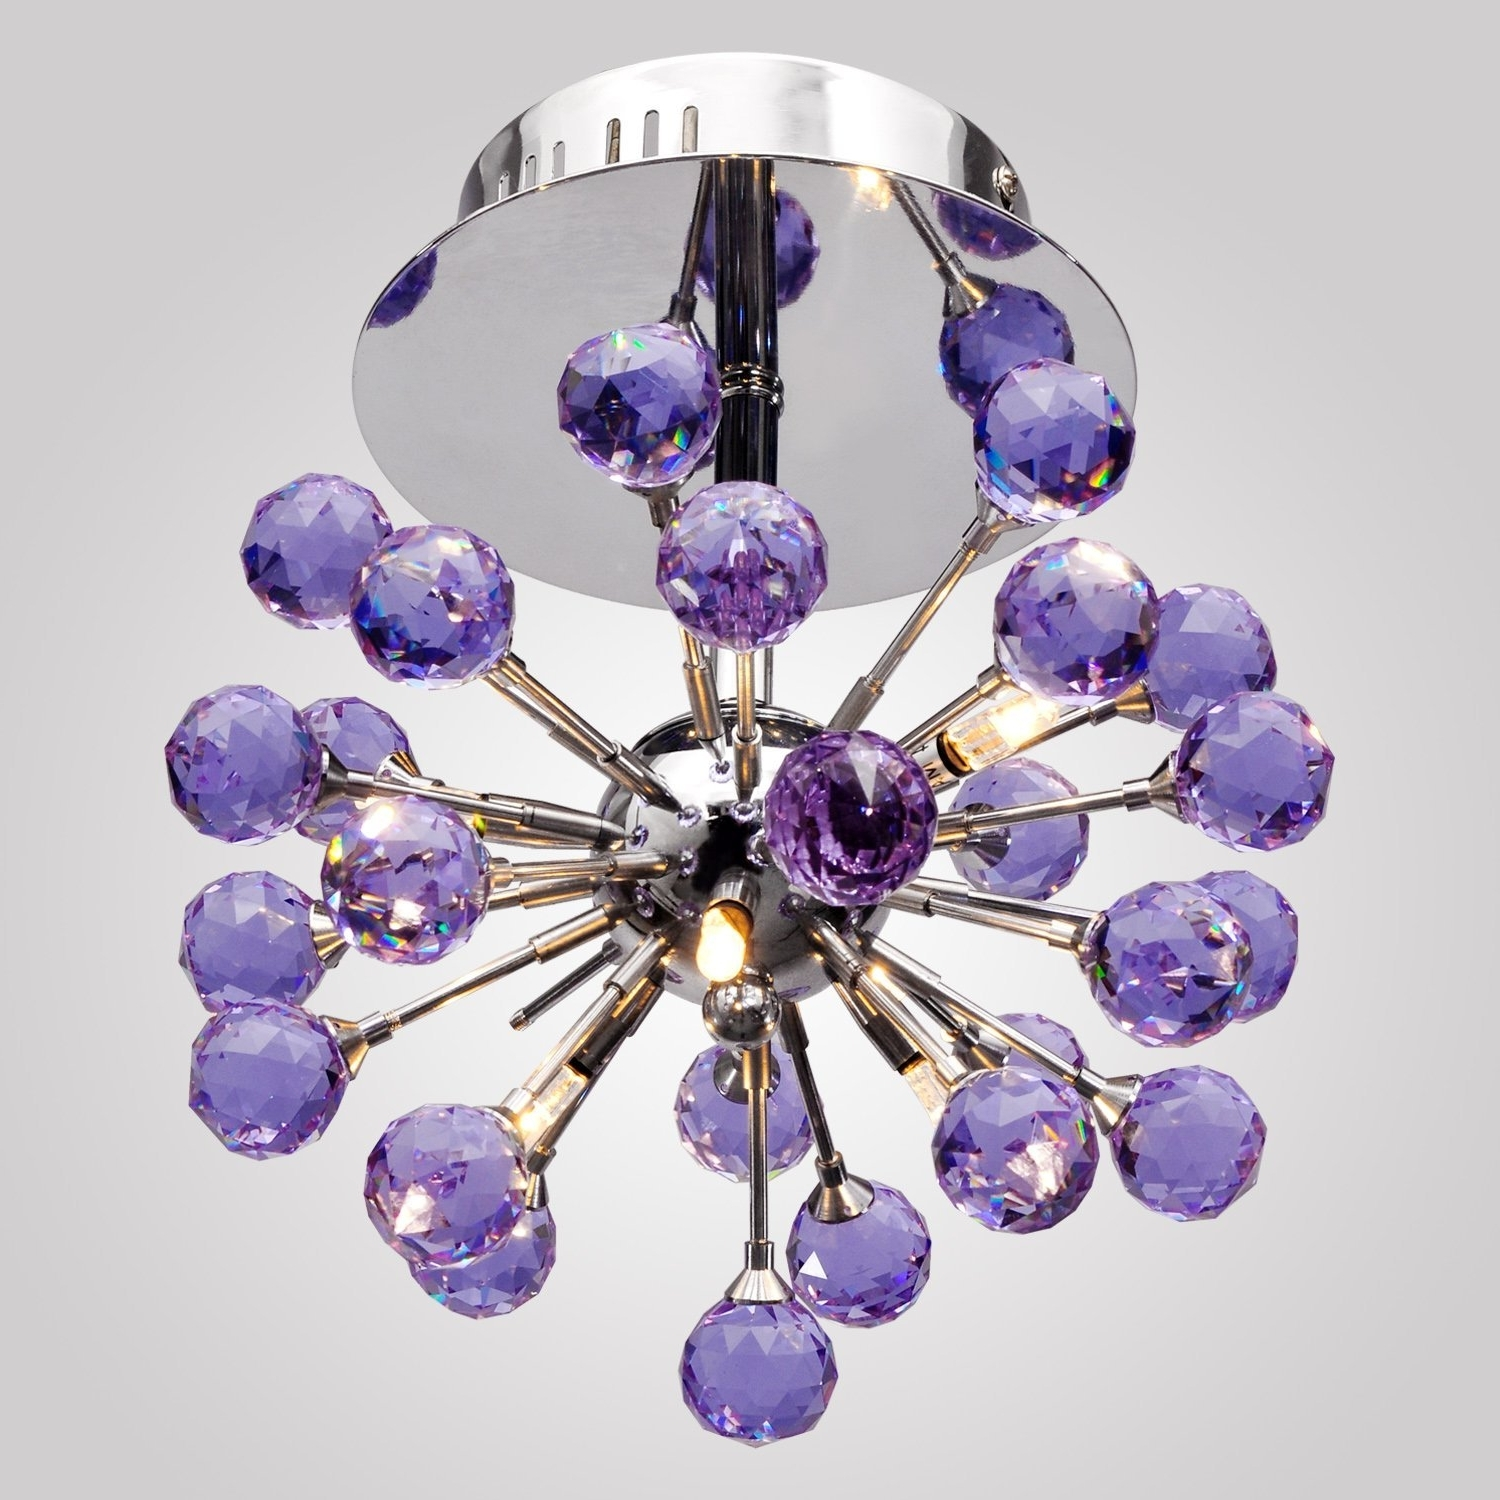 Lightinthebox 6 Light Floral Shape K9 Crystal Ceiling Light Purple Regarding Widely Used Purple Crystal Chandelier Lights (View 13 of 15)